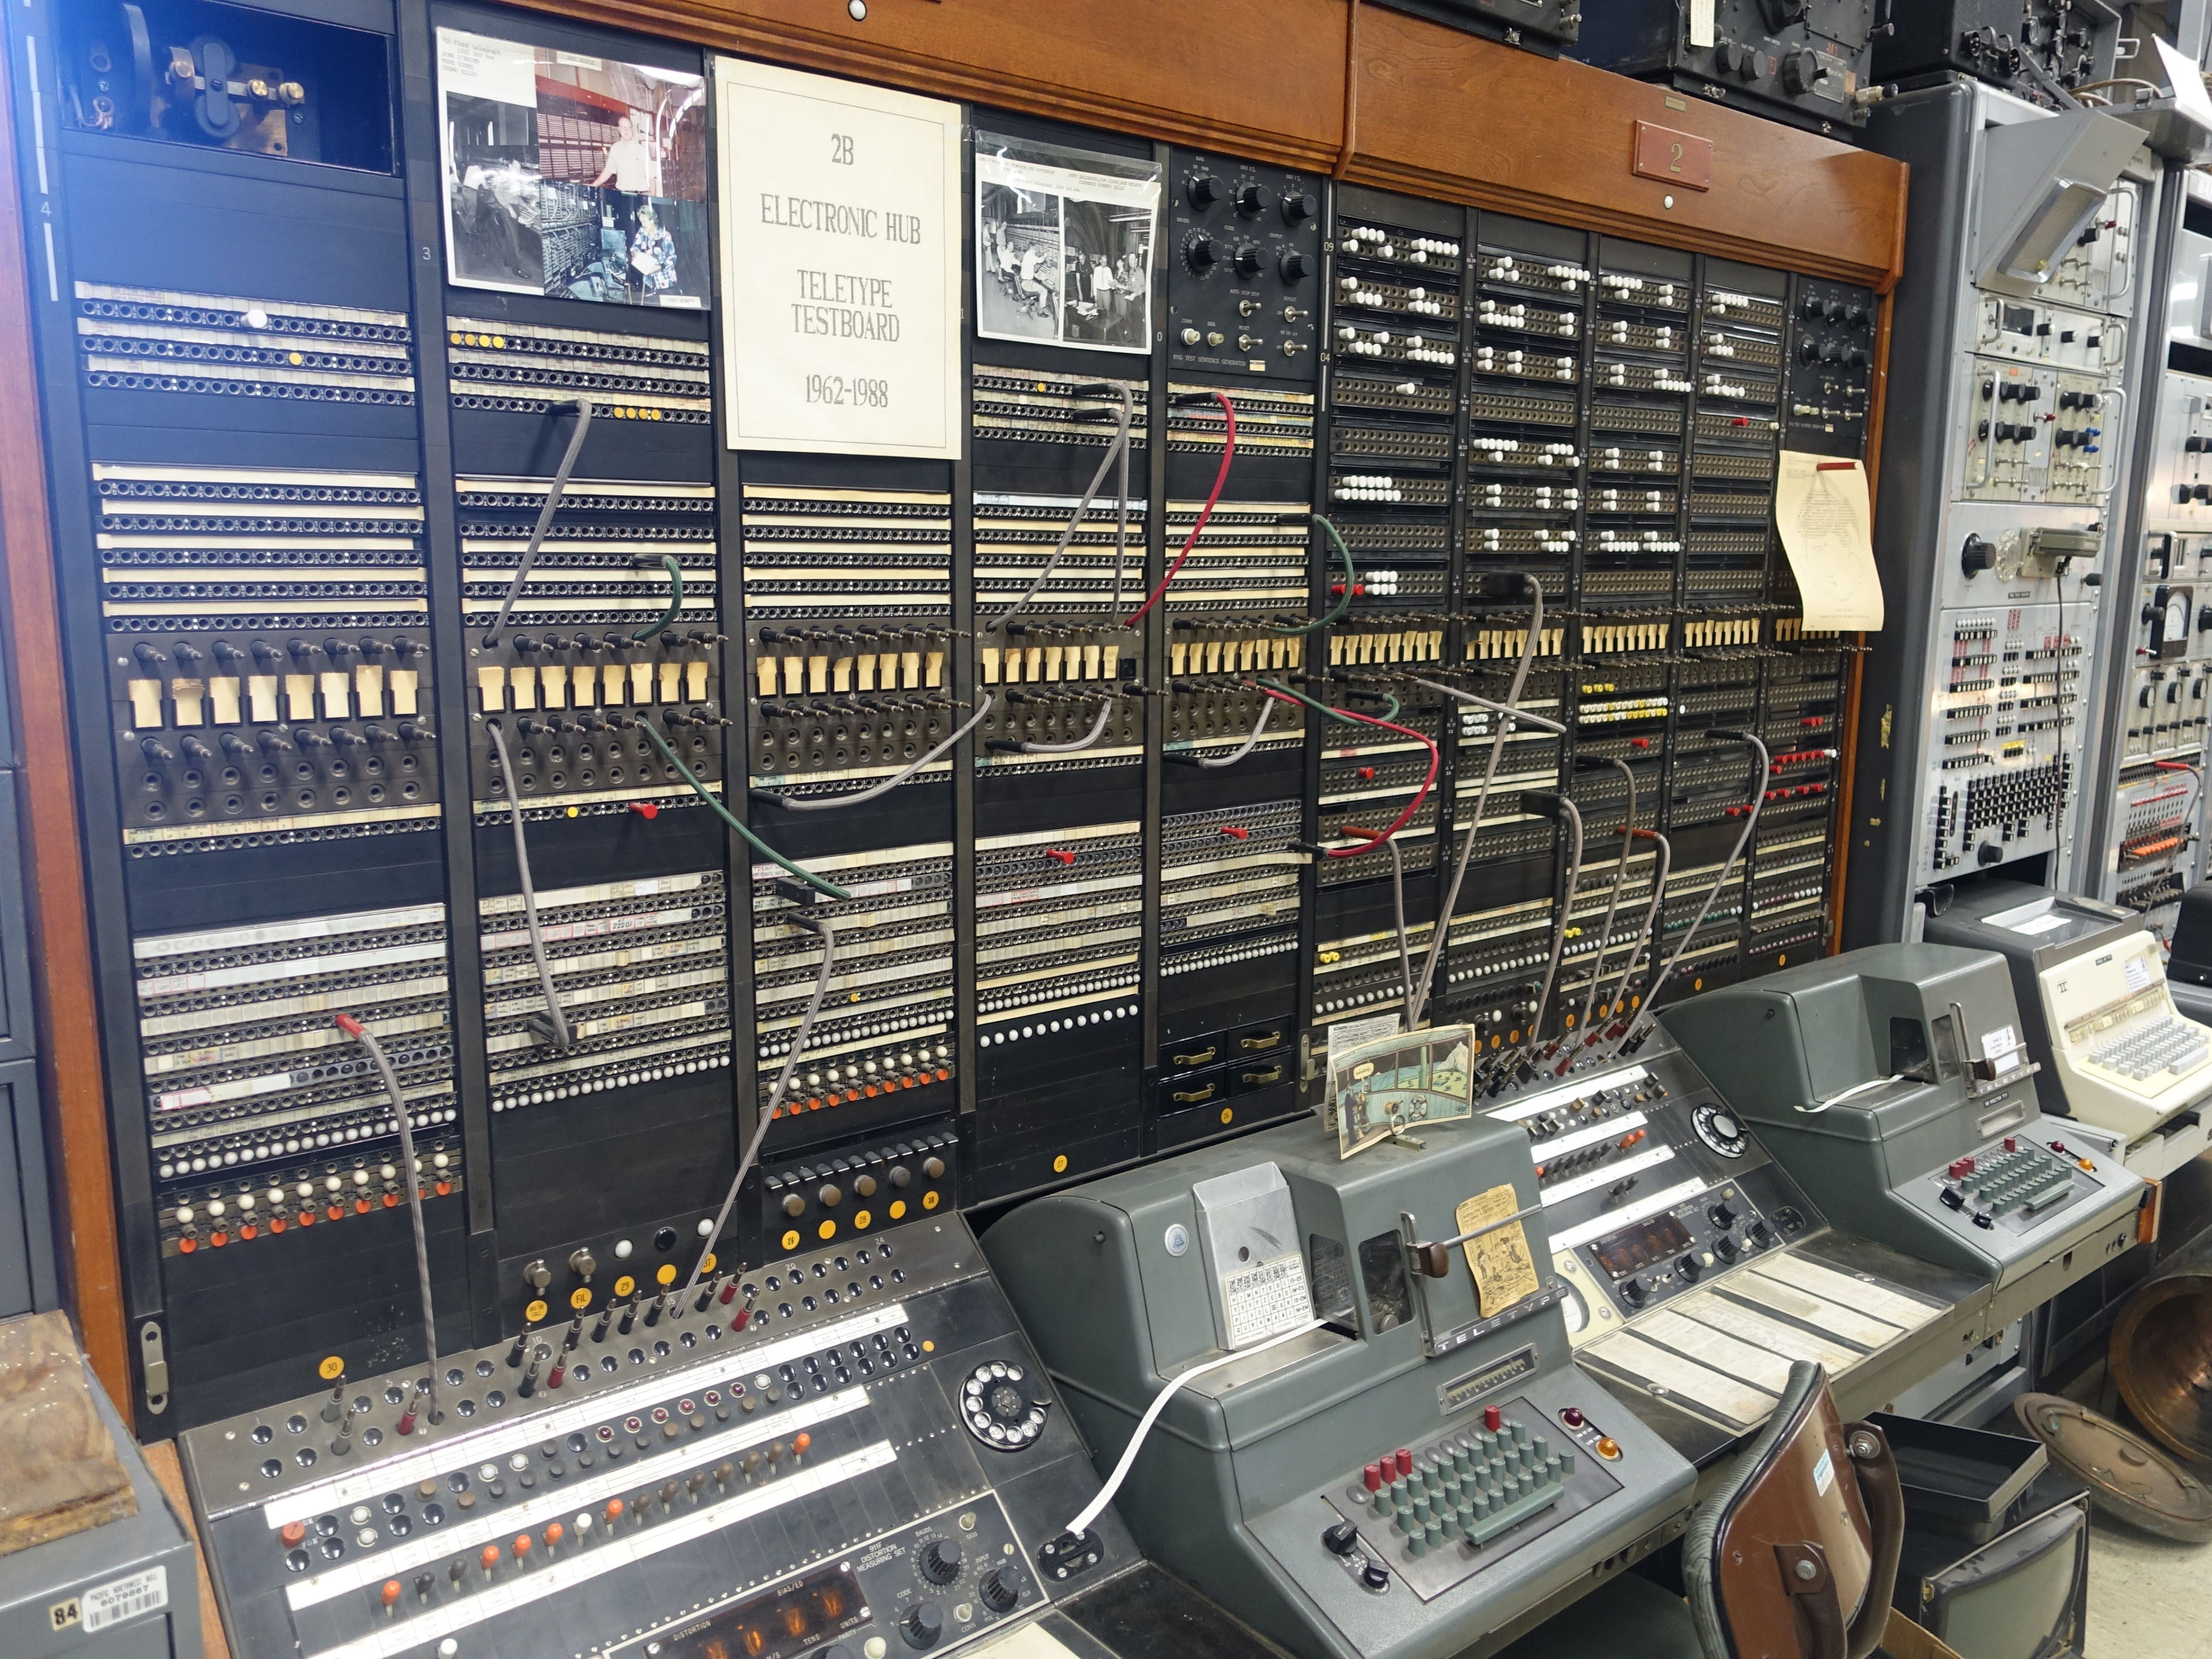 Another display of telecommunications equipment.